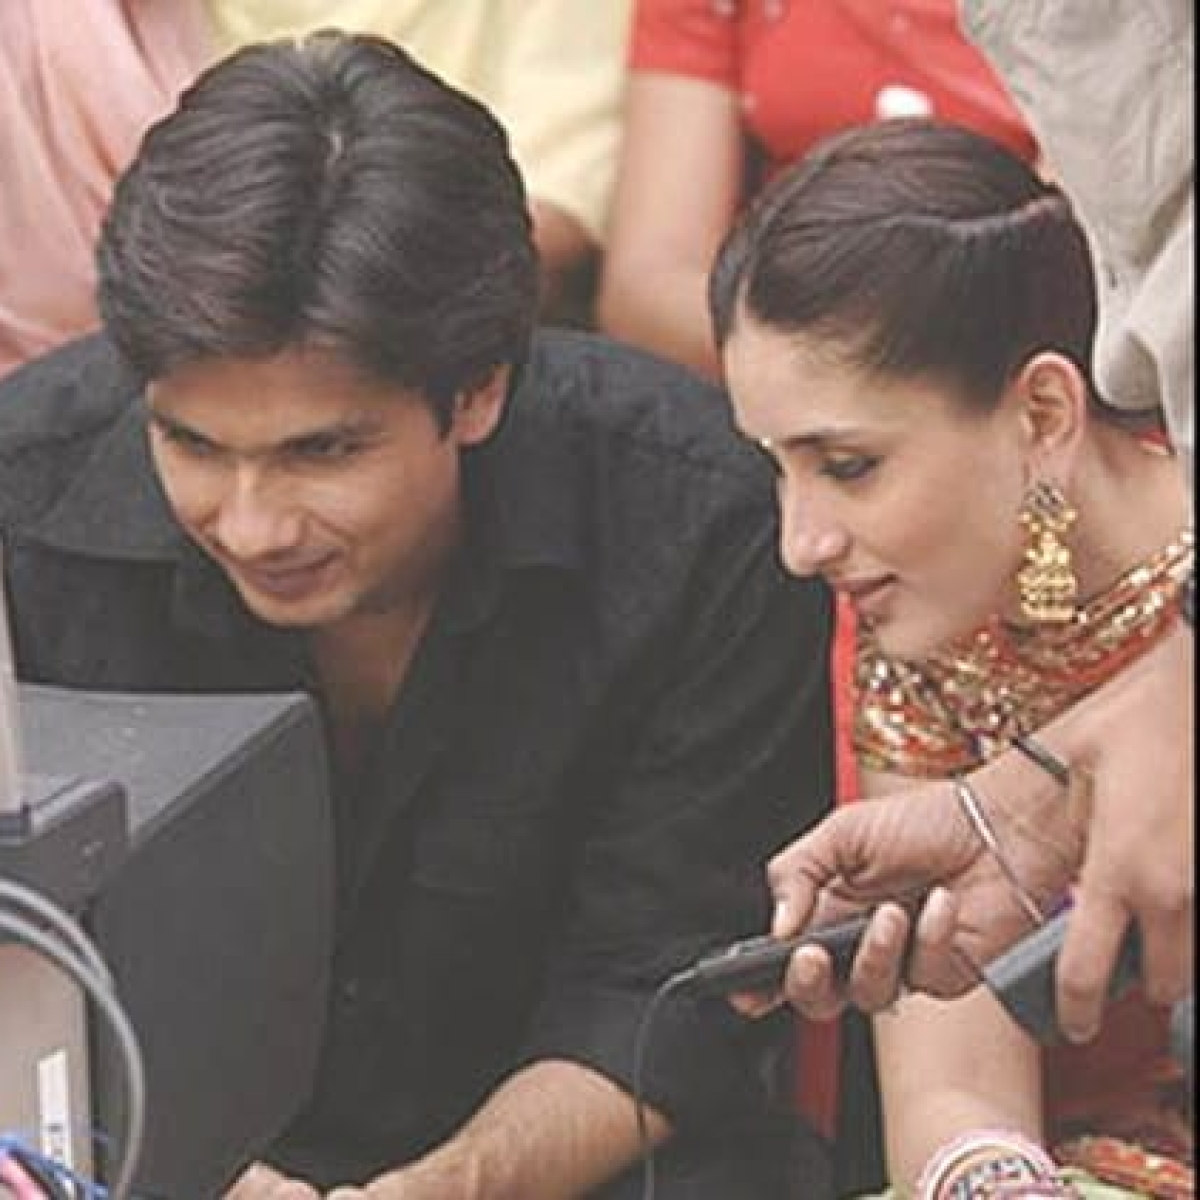 13 years of 'Jab We Met': Kareena shares BTS pic featuring ex-BF Shahid Kapoor with a brow-raising caption